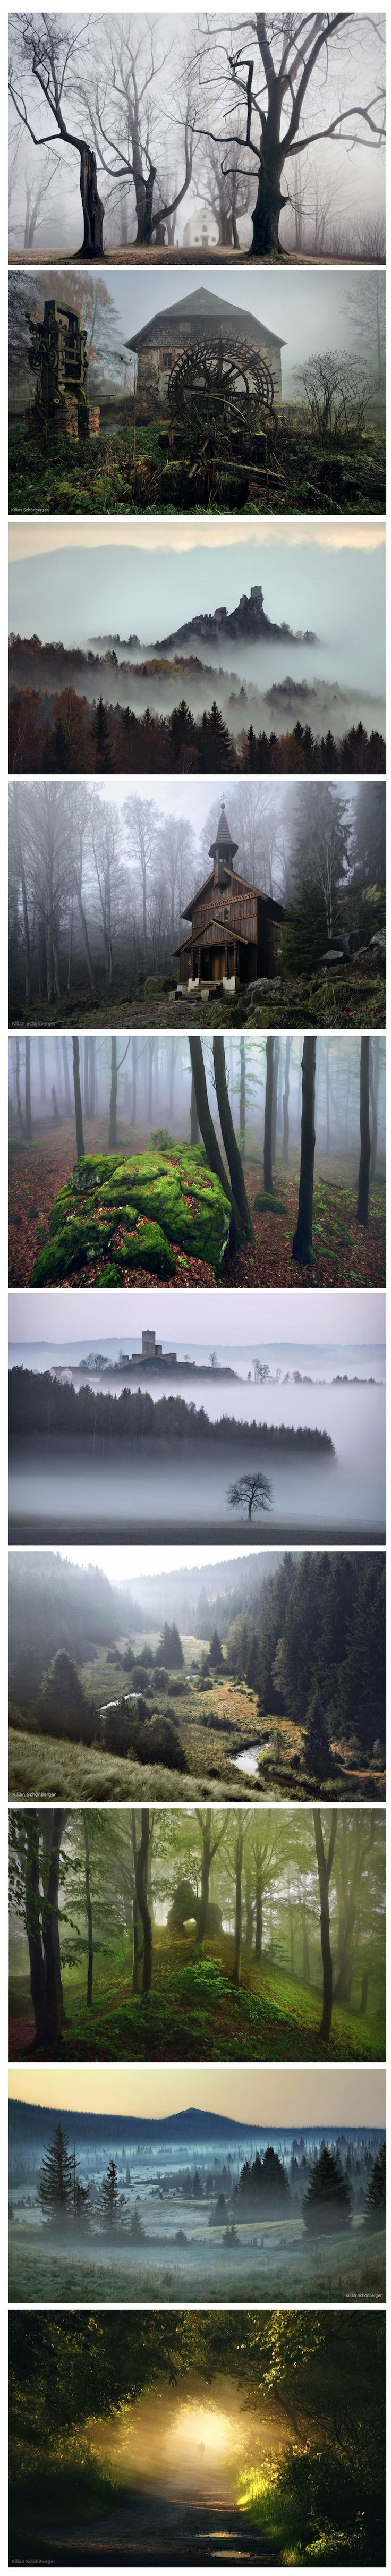 German photographer Killian Schoenberger has utilized moody landscape and old stories of his childhood homeland to create a series of photographic illustrations inspired by the fairy tales of the Brothers Grimm. Shot in remote rural areas of Middle Europe dominated by images of haunting fog, gnarled trees and dark homes you hope are abandoned. His exemplary work as a photographer is made even more impressive by the fact that he is colorblind.